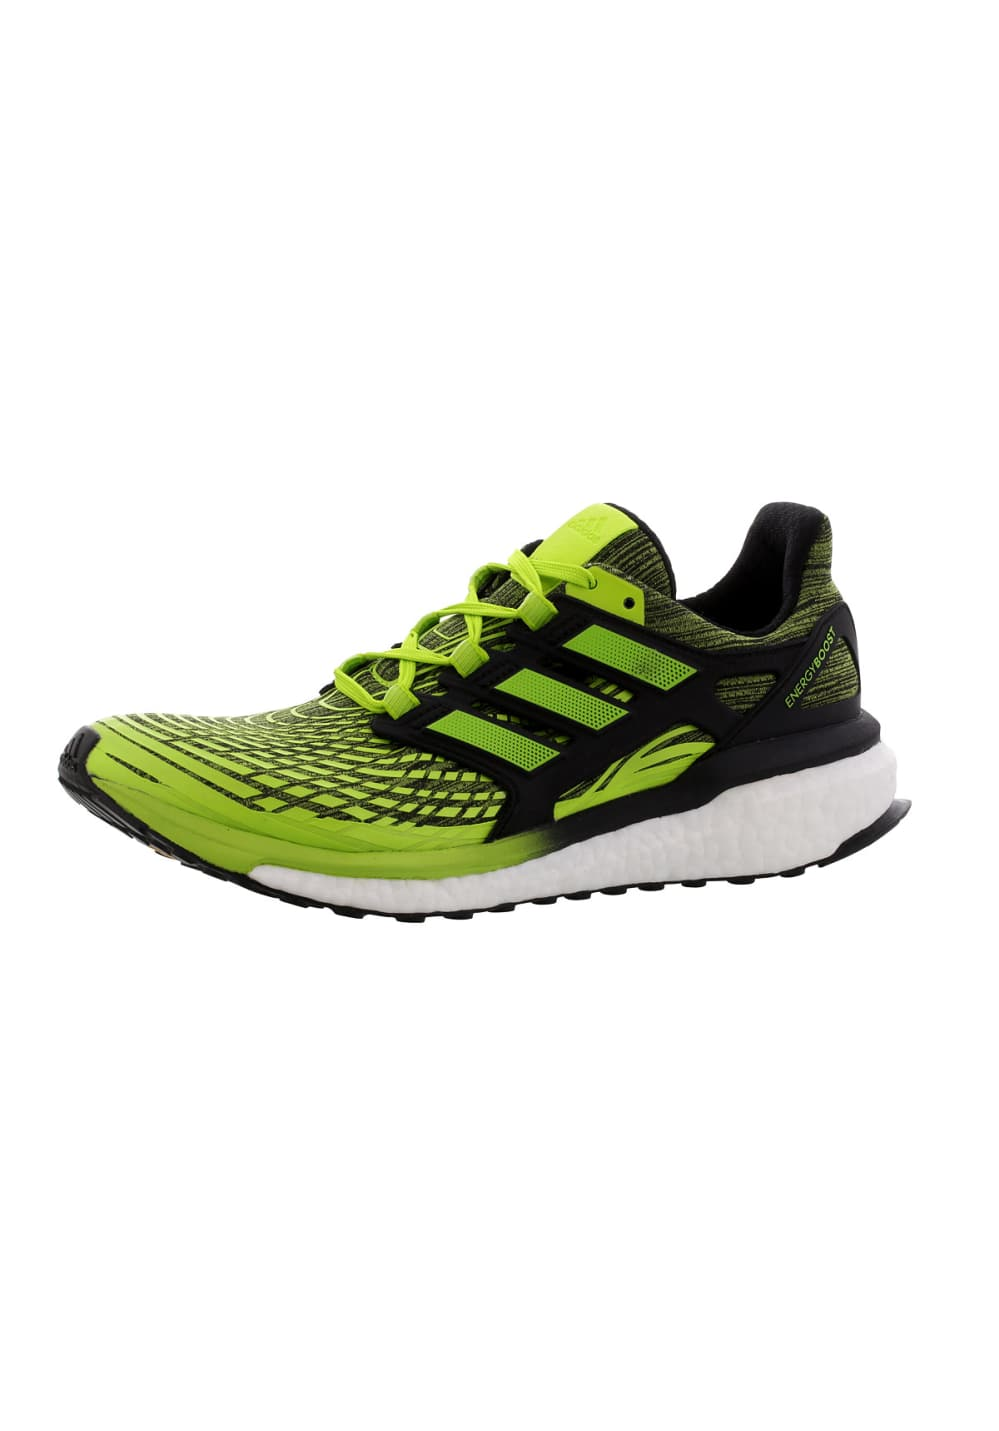 Vert Pour Adidas Boost Running Chaussures Energy Homme v7ybIfY6gm